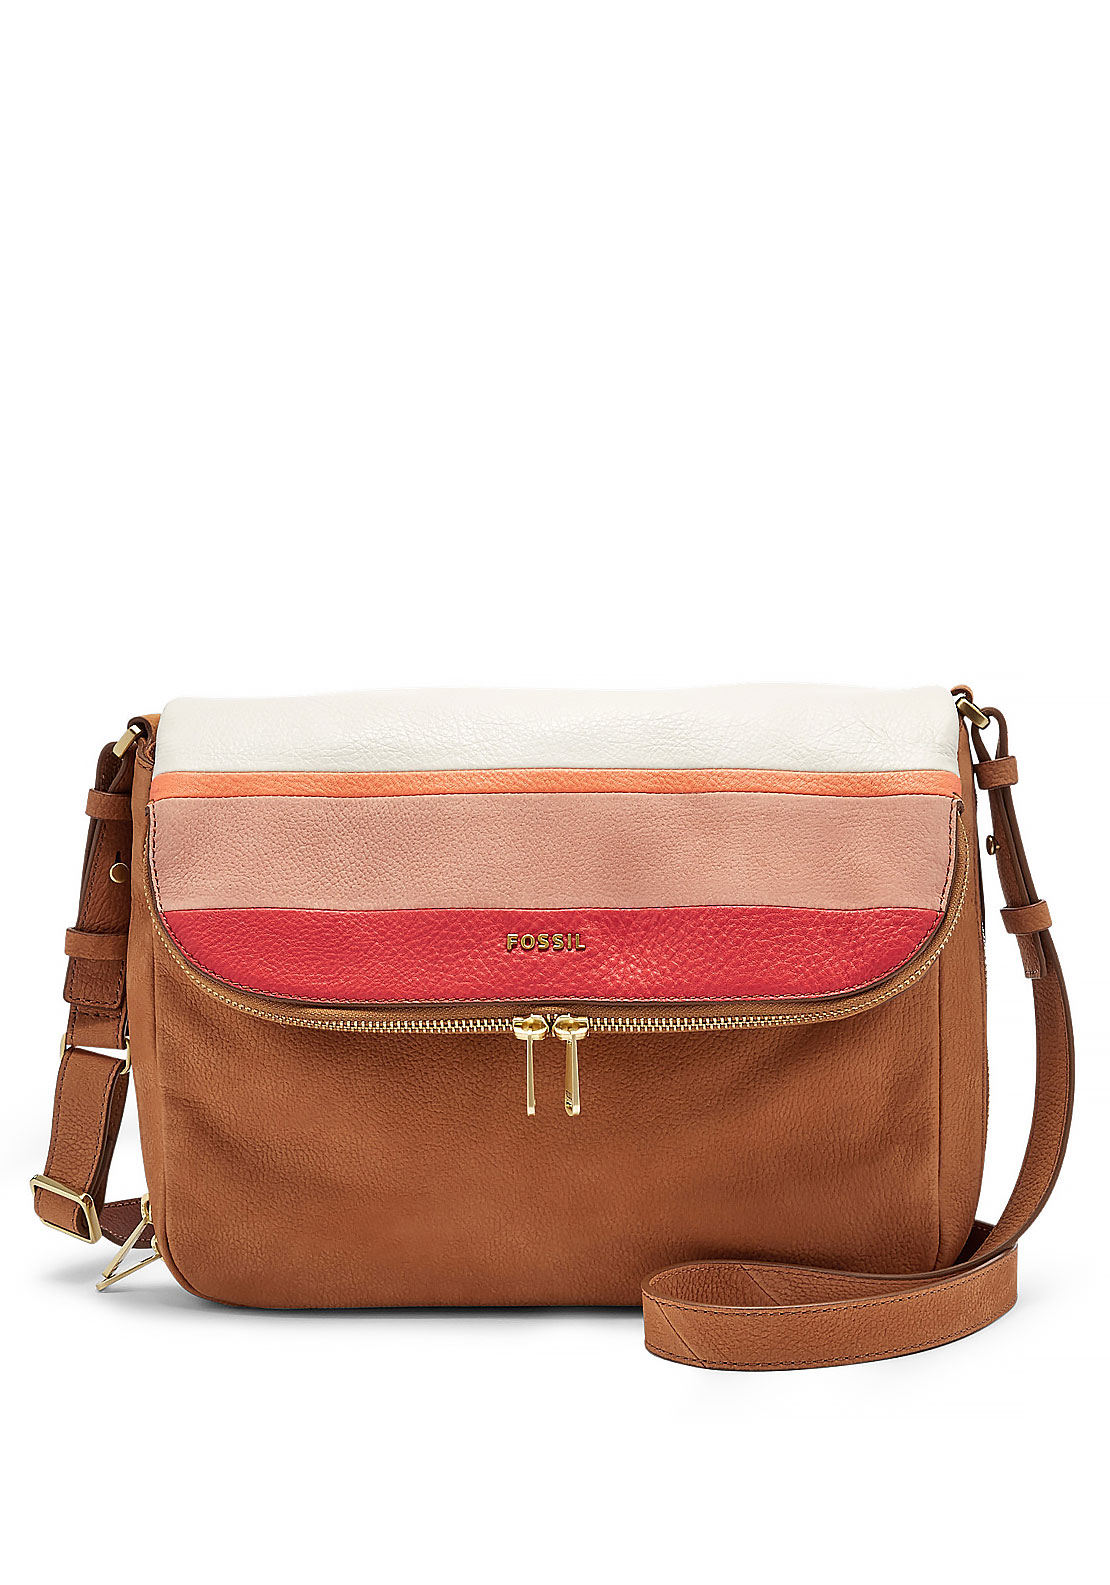 Fossil Preston Leather Flap Crossbody Bag, Tan Multi